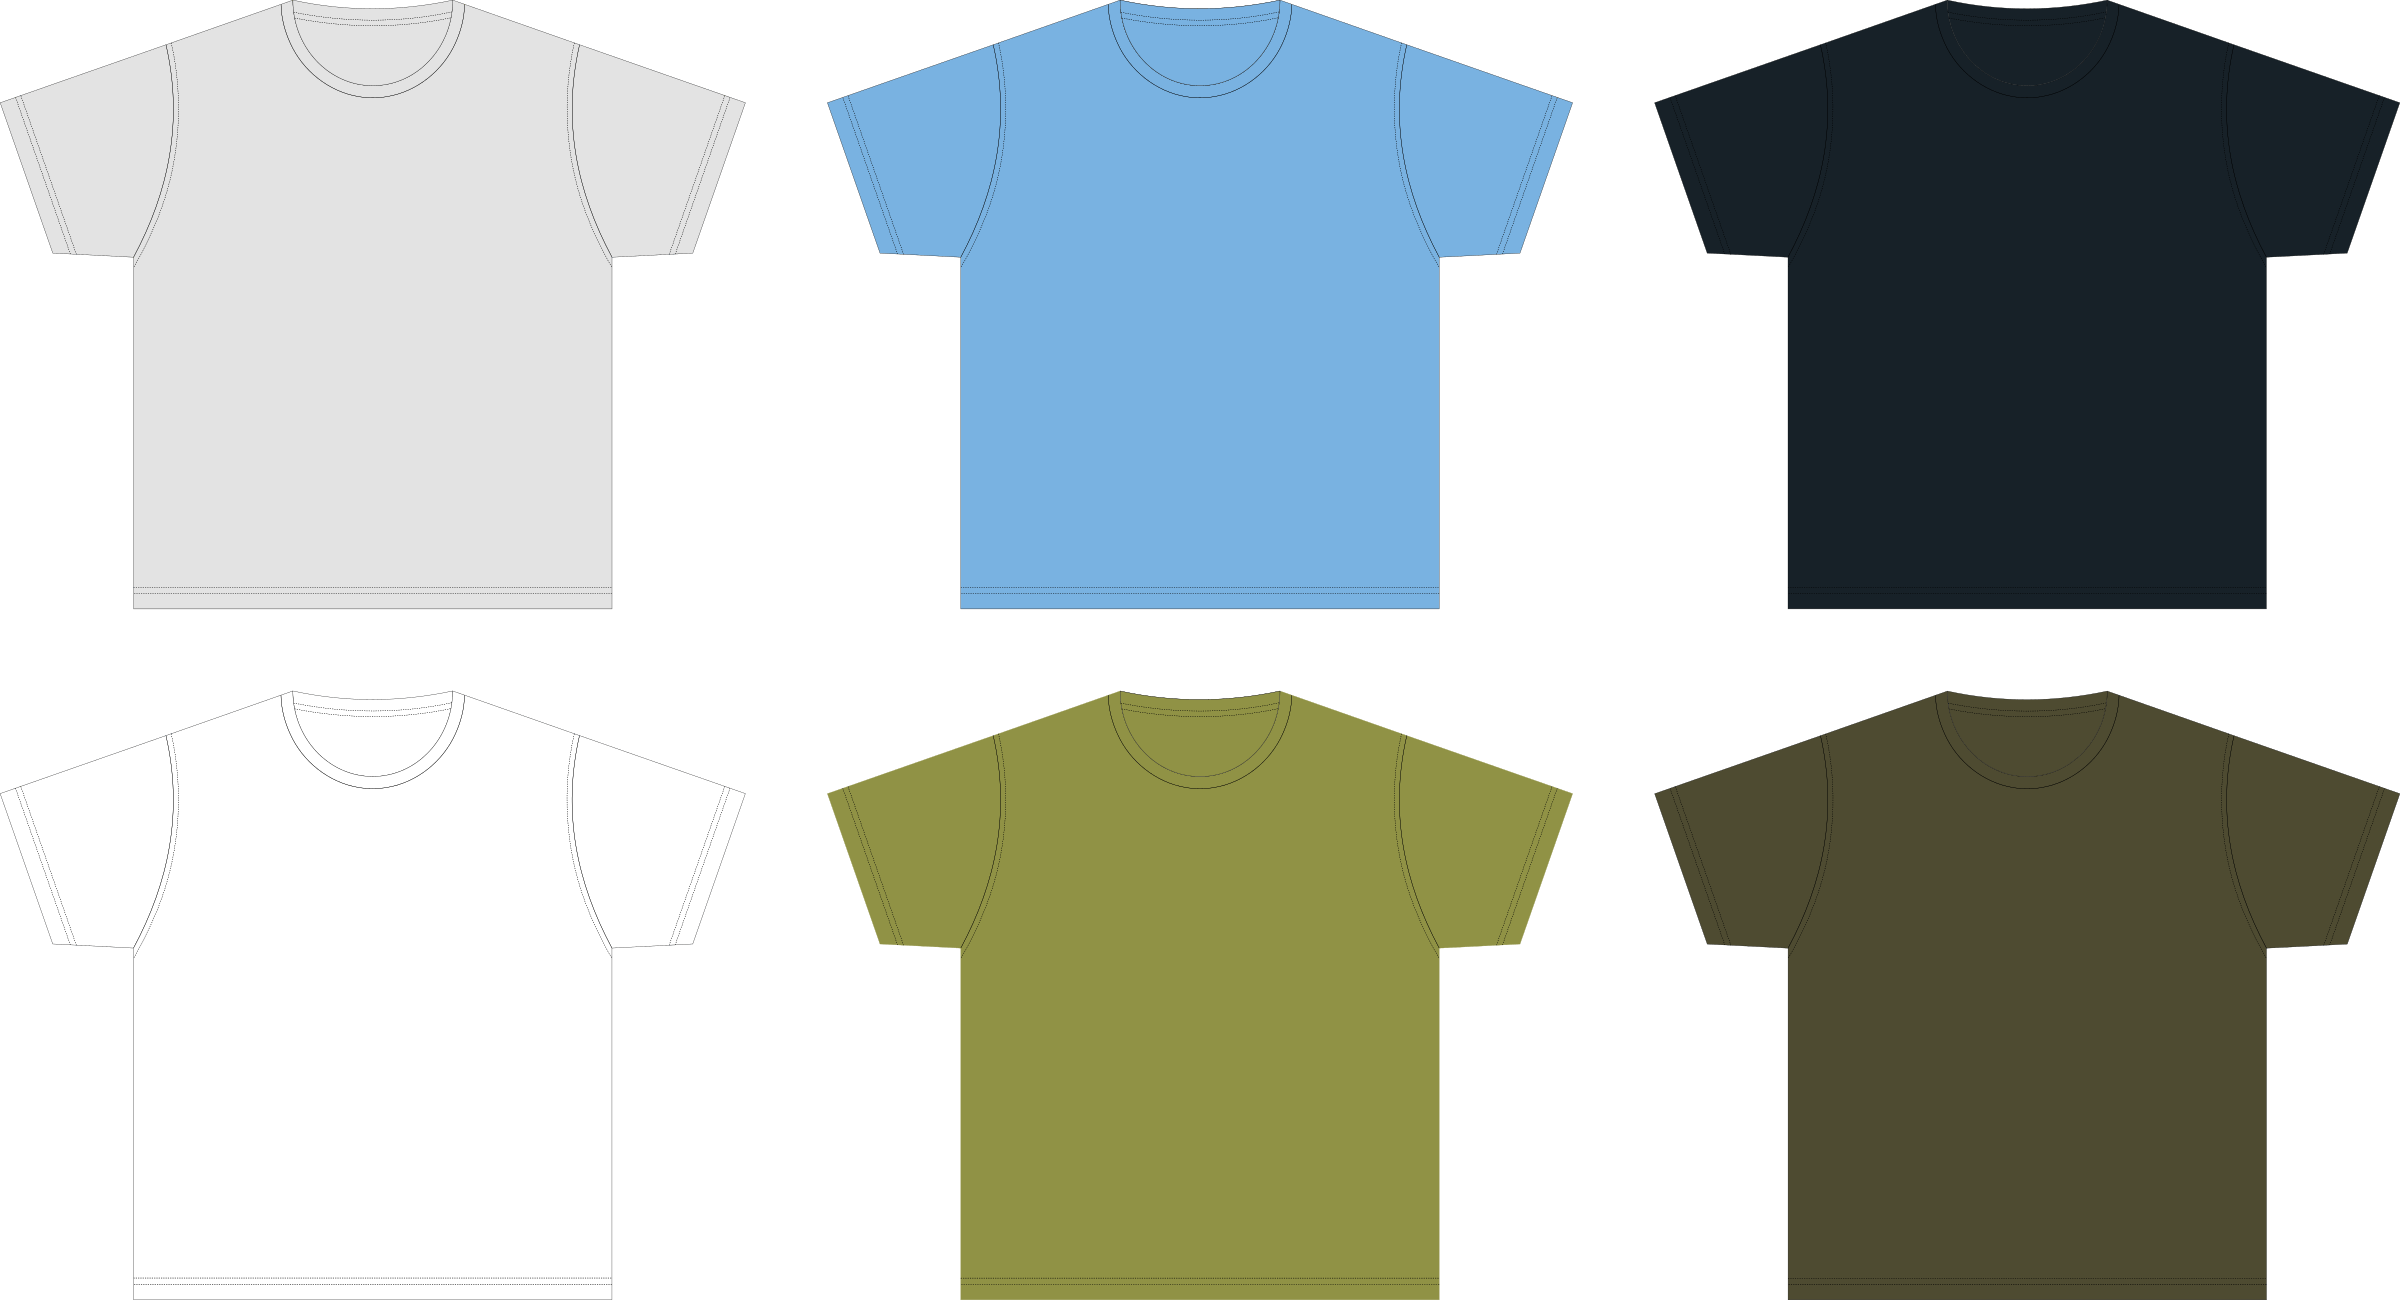 Blank Tshirt Template PNG for Design | HD Wallpapers ...